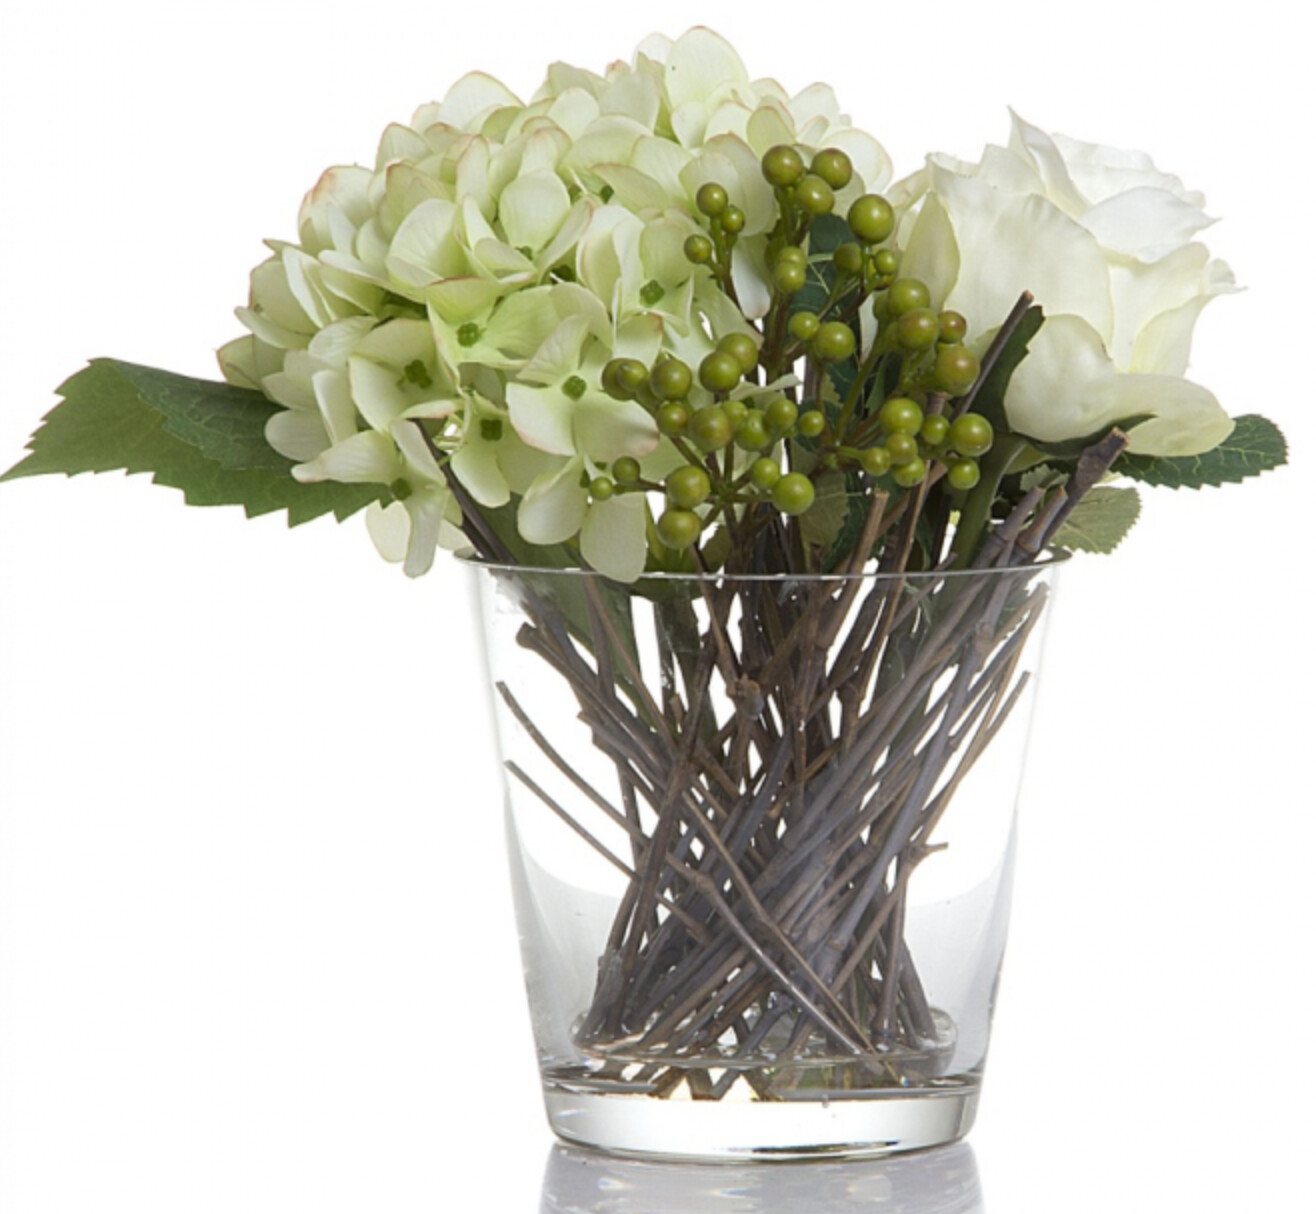 ROSE/BERRY/HYD IN GLASS VASE - WHITE